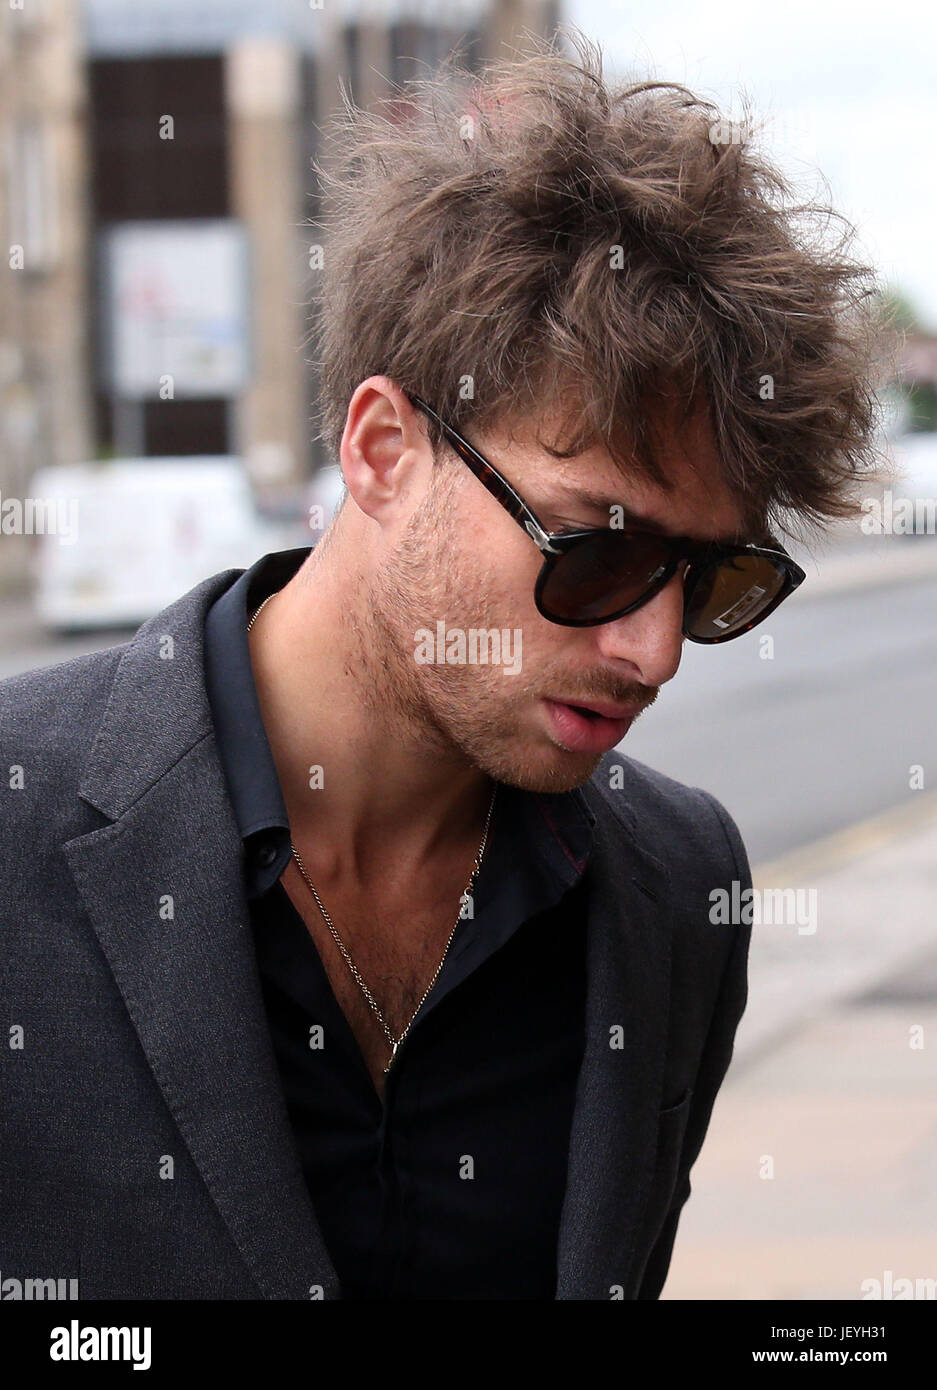 Singer Paolo Nutini arrives at Paisley Sheriff Court where the singer is on trial trial accused of driving under - Stock Image